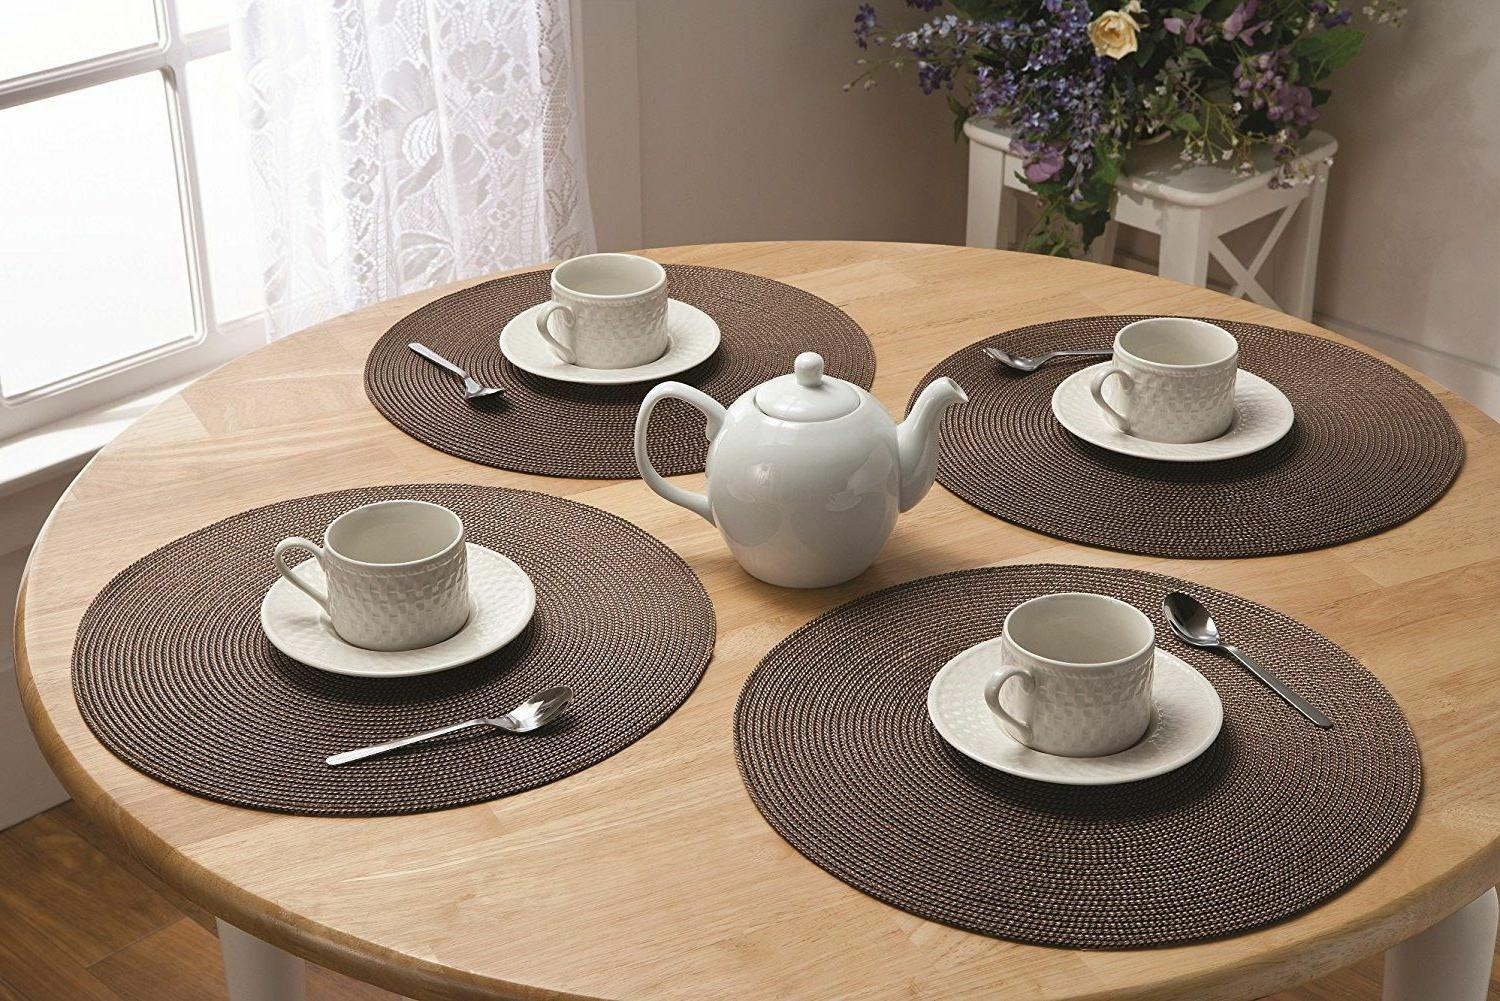 Set of Table Place